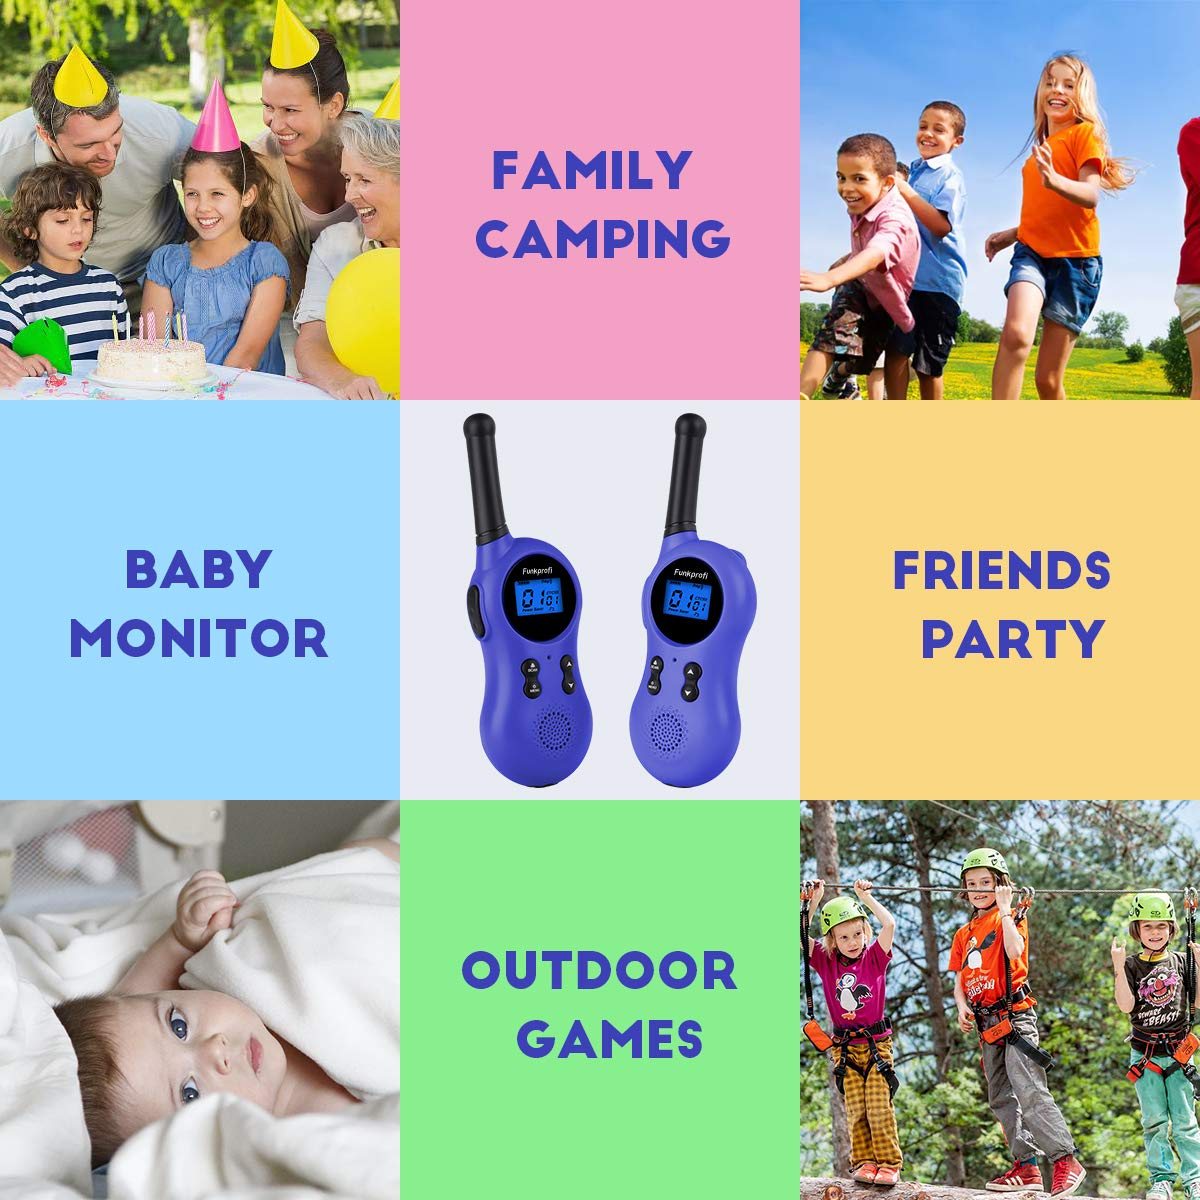 Funkprofi Walkie Talkies for Kids 22 Channels VOX Voice Activated Rechargeable Kids Walkie Talkies for Camping, Hiking, Batteries and Type C Cable Included, Ideal Toys for Teen Boys and Girls by Funkprofi (Image #5)